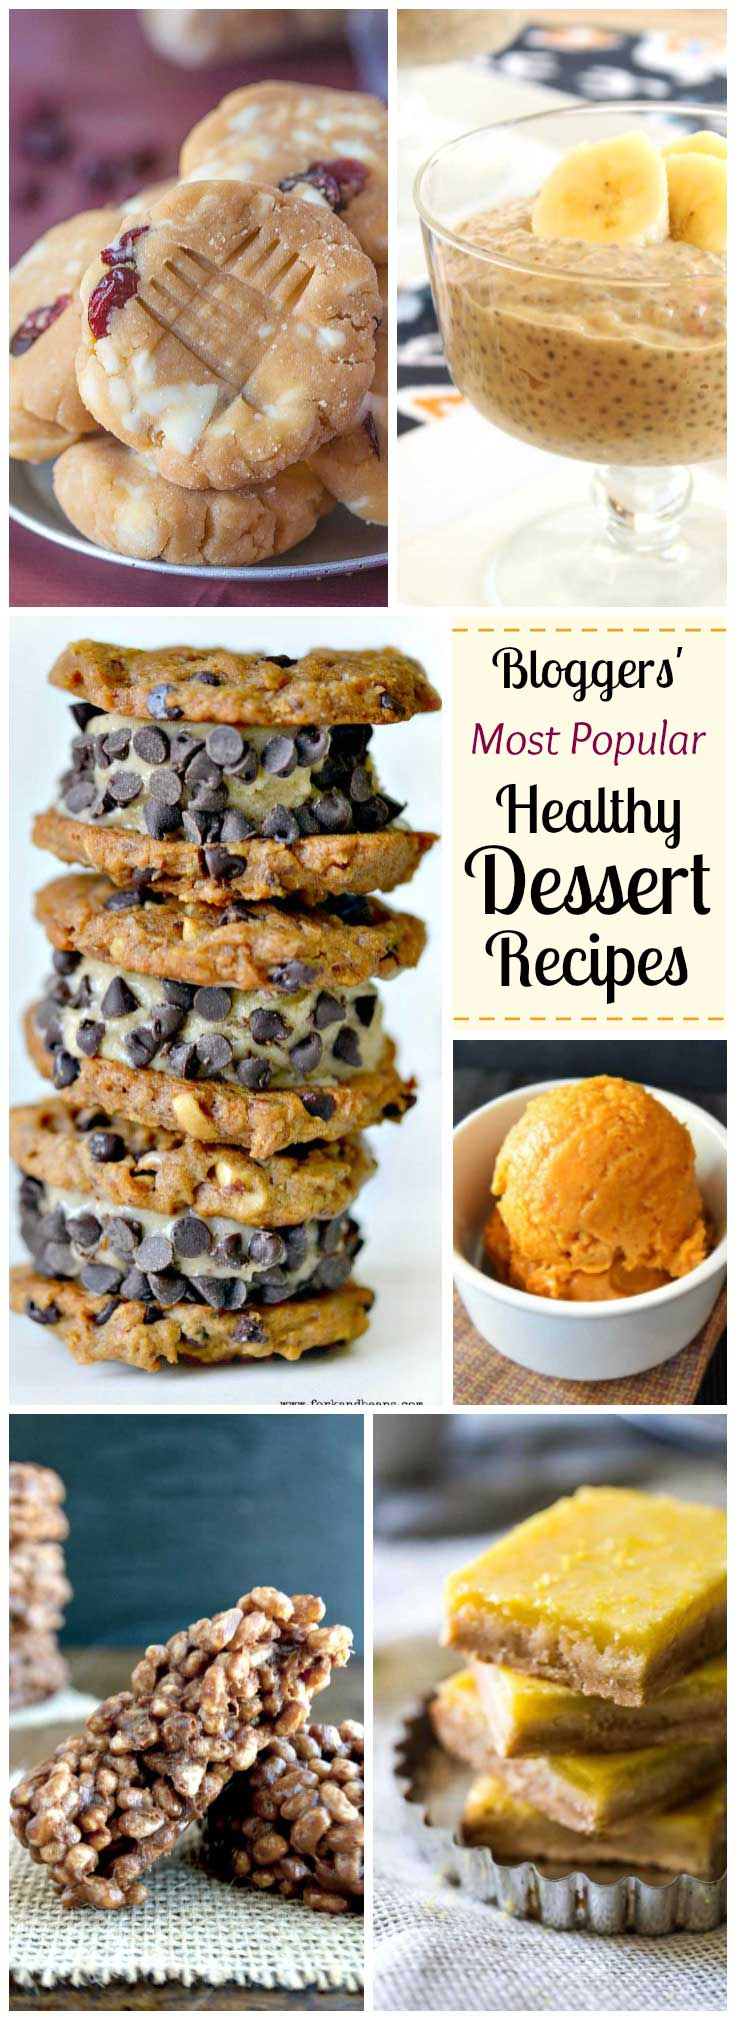 These super-popular dessert recipes are easy, healthy … and already superstars! Some of the most popular healthy recipes food bloggers have ever posted - and now we're thrilled to share them with you! They totally prove that healthy desserts can still be deliciously decadent and oh-so satisfying. Guilt-free and full of nutritious ingredients, these skinny dessert recipes are the answer to your cravings! Healthy dessert recipes you can truly feel good about serving!   www.TwoHealthyKitchens.com